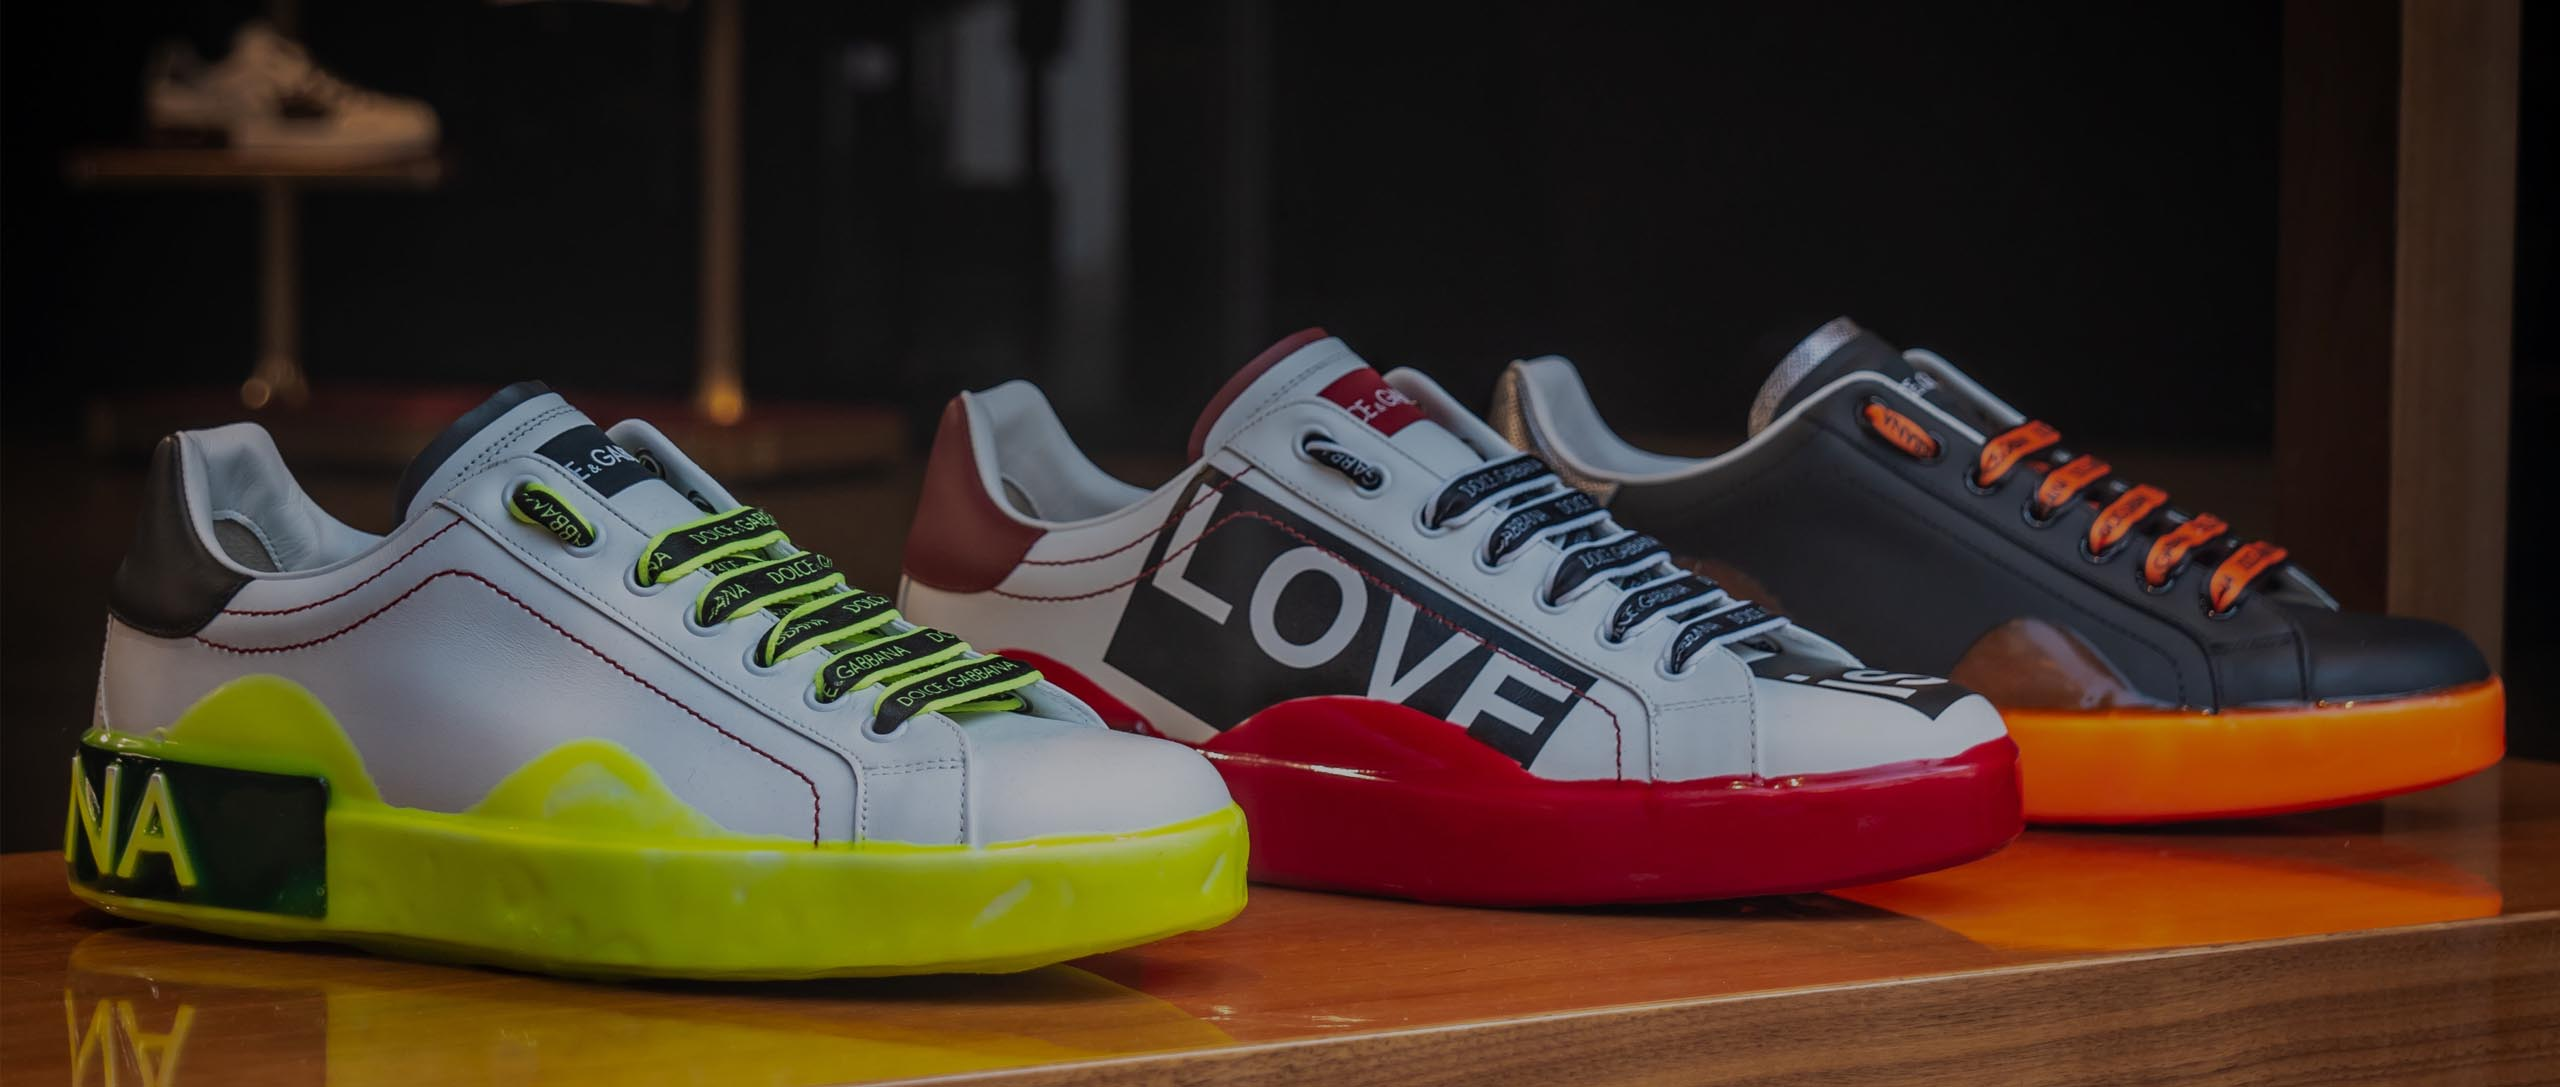 clarco shoes customization banner